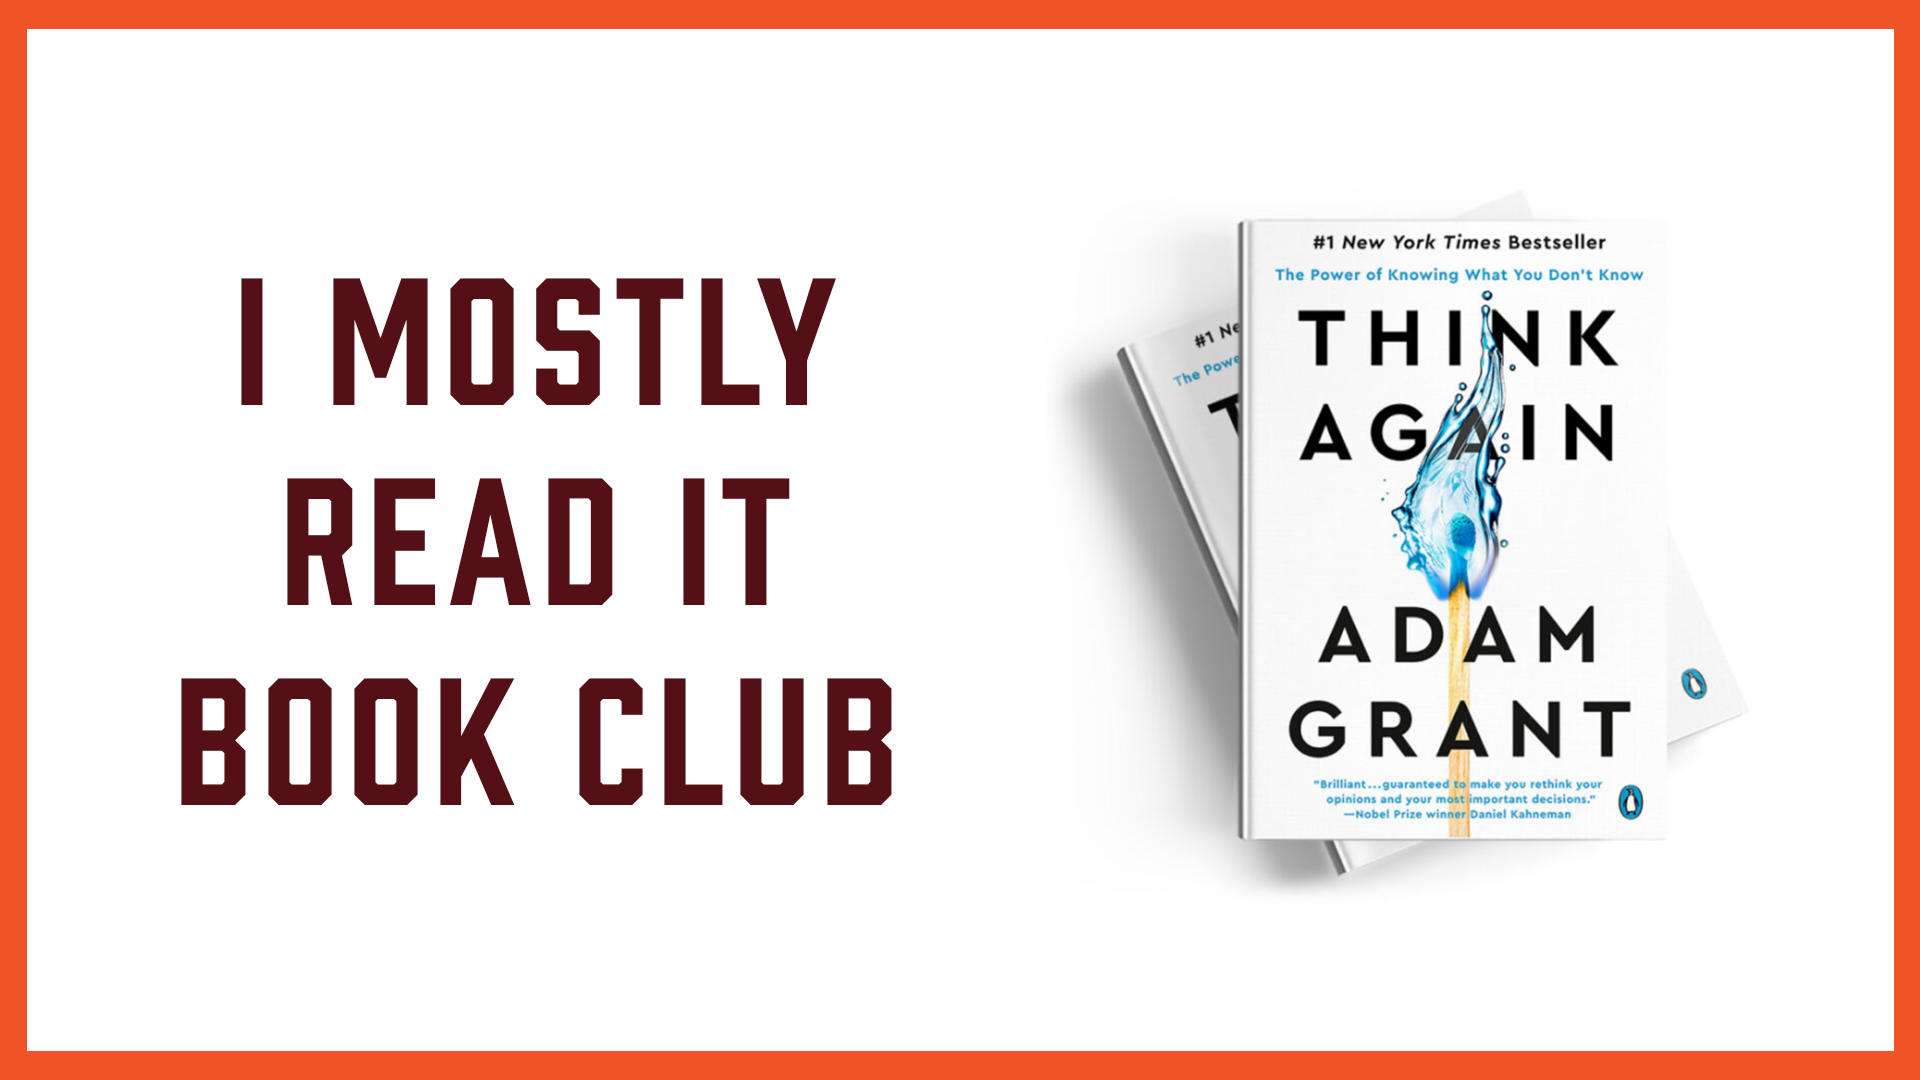 I Mostly Read It Book Club: Adam Grant Banner August 2021